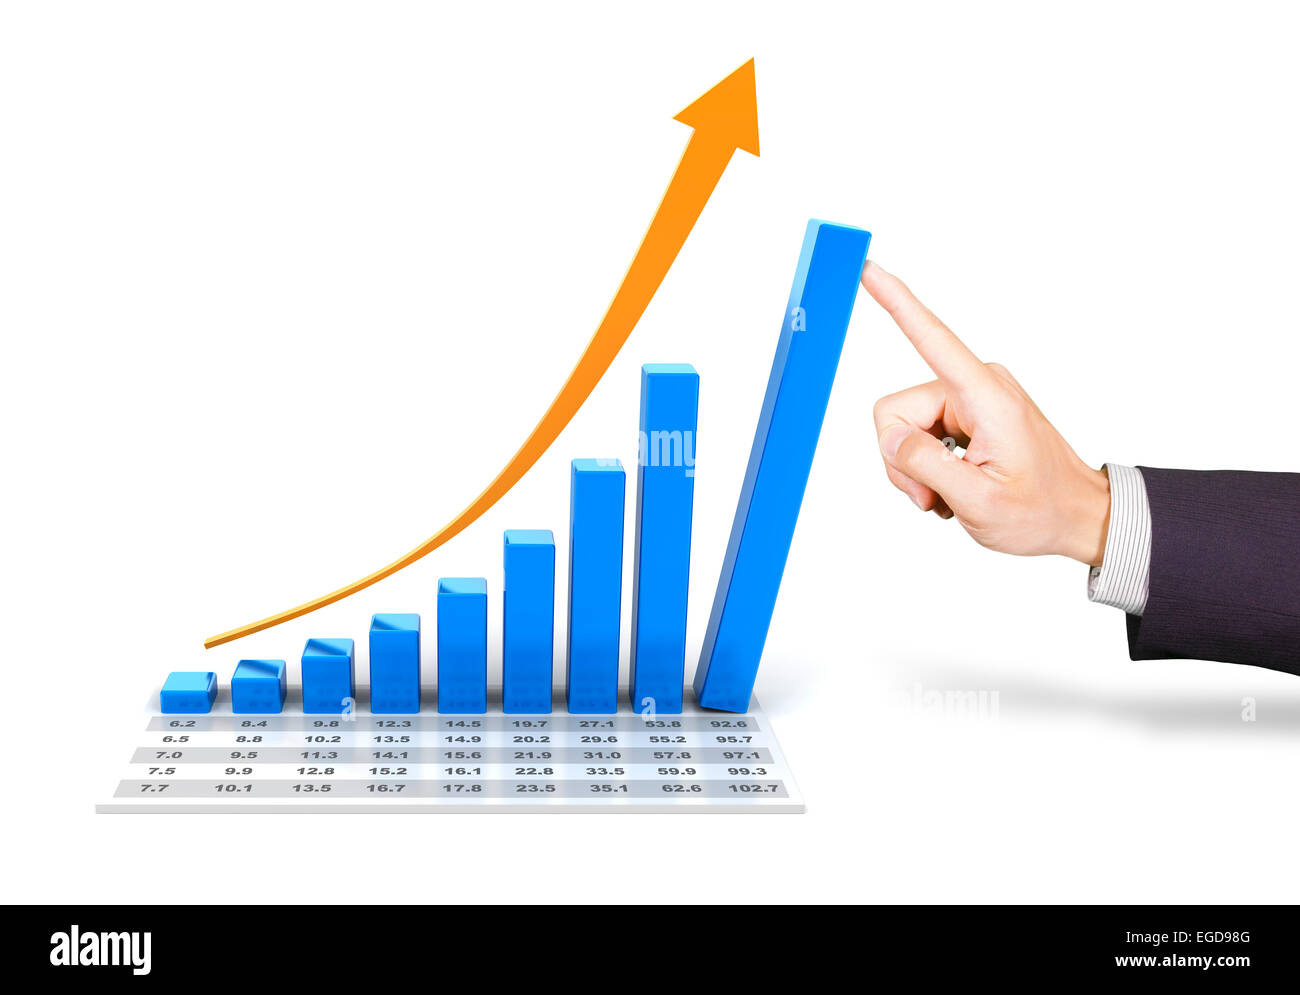 Rising chart with hand pushing the tallest bar Stock Photo